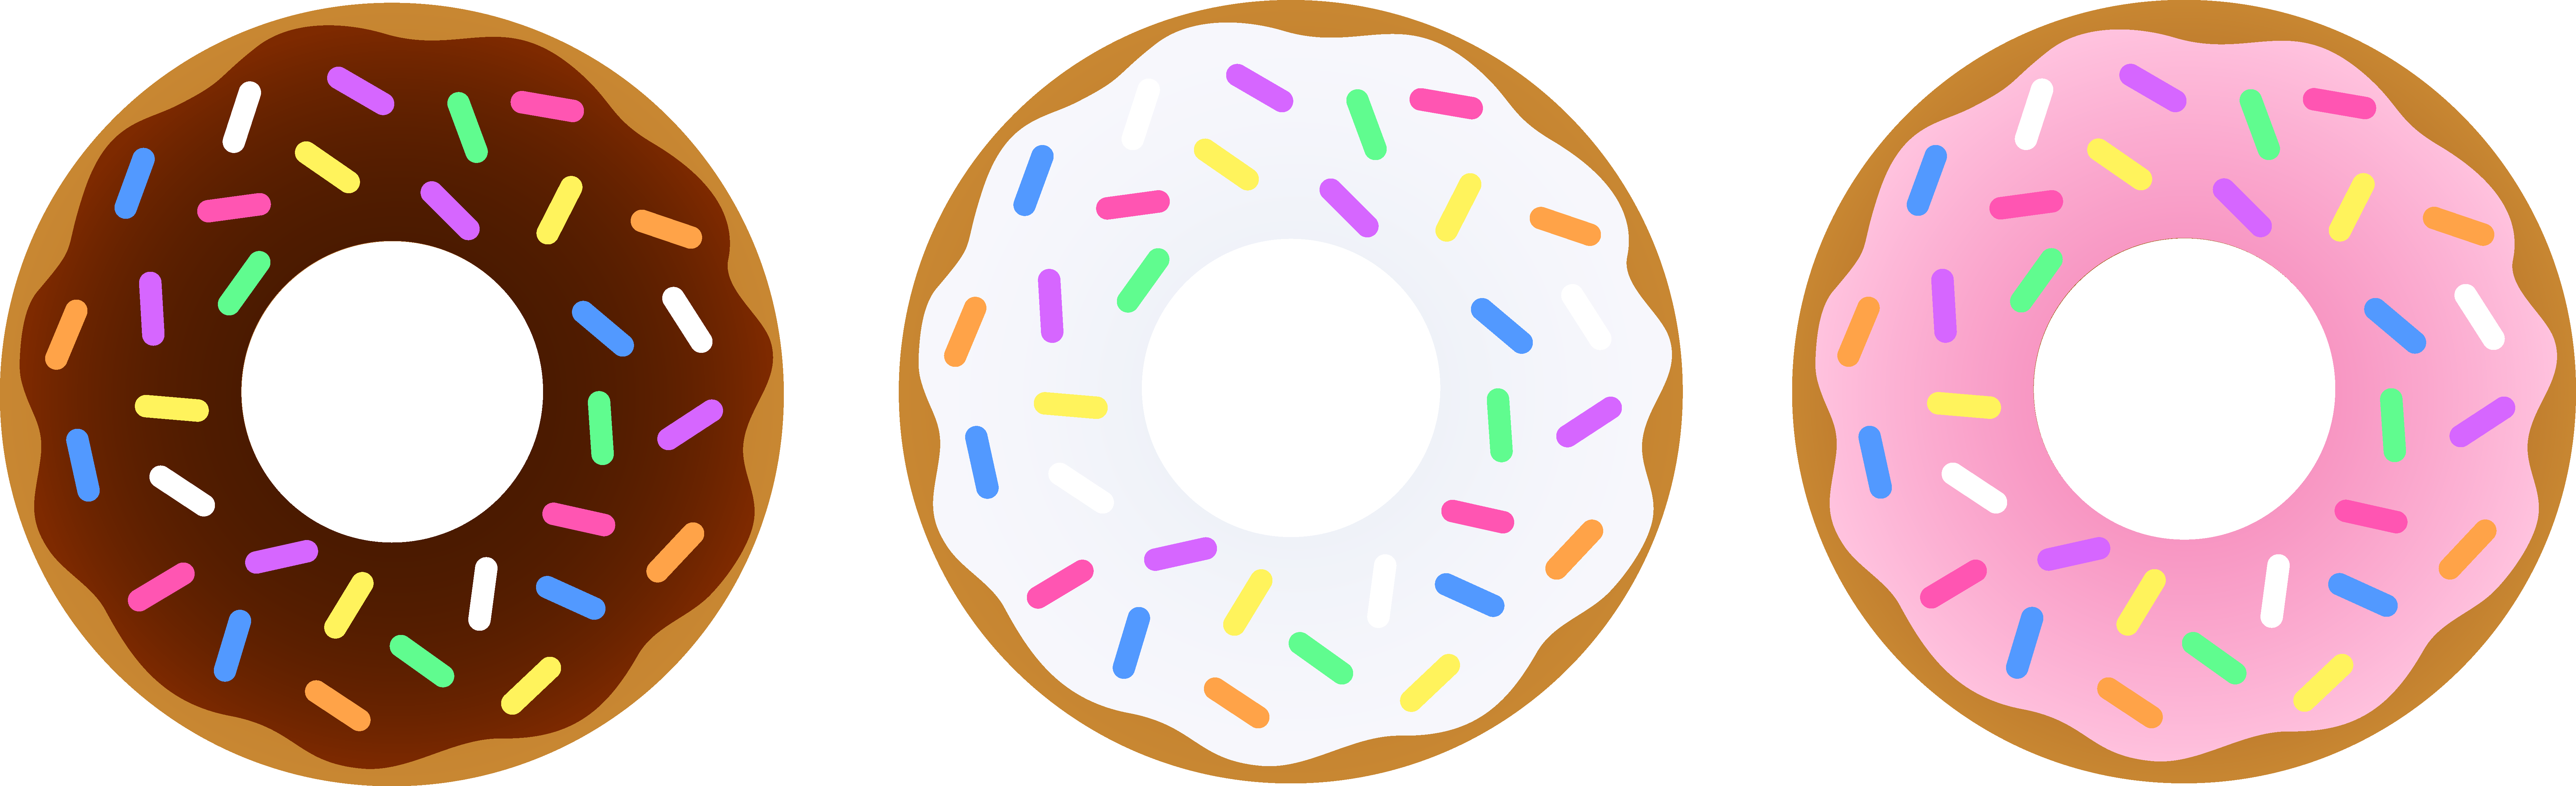 Strawberries clipart frosted donut. Clip art with sprinkles